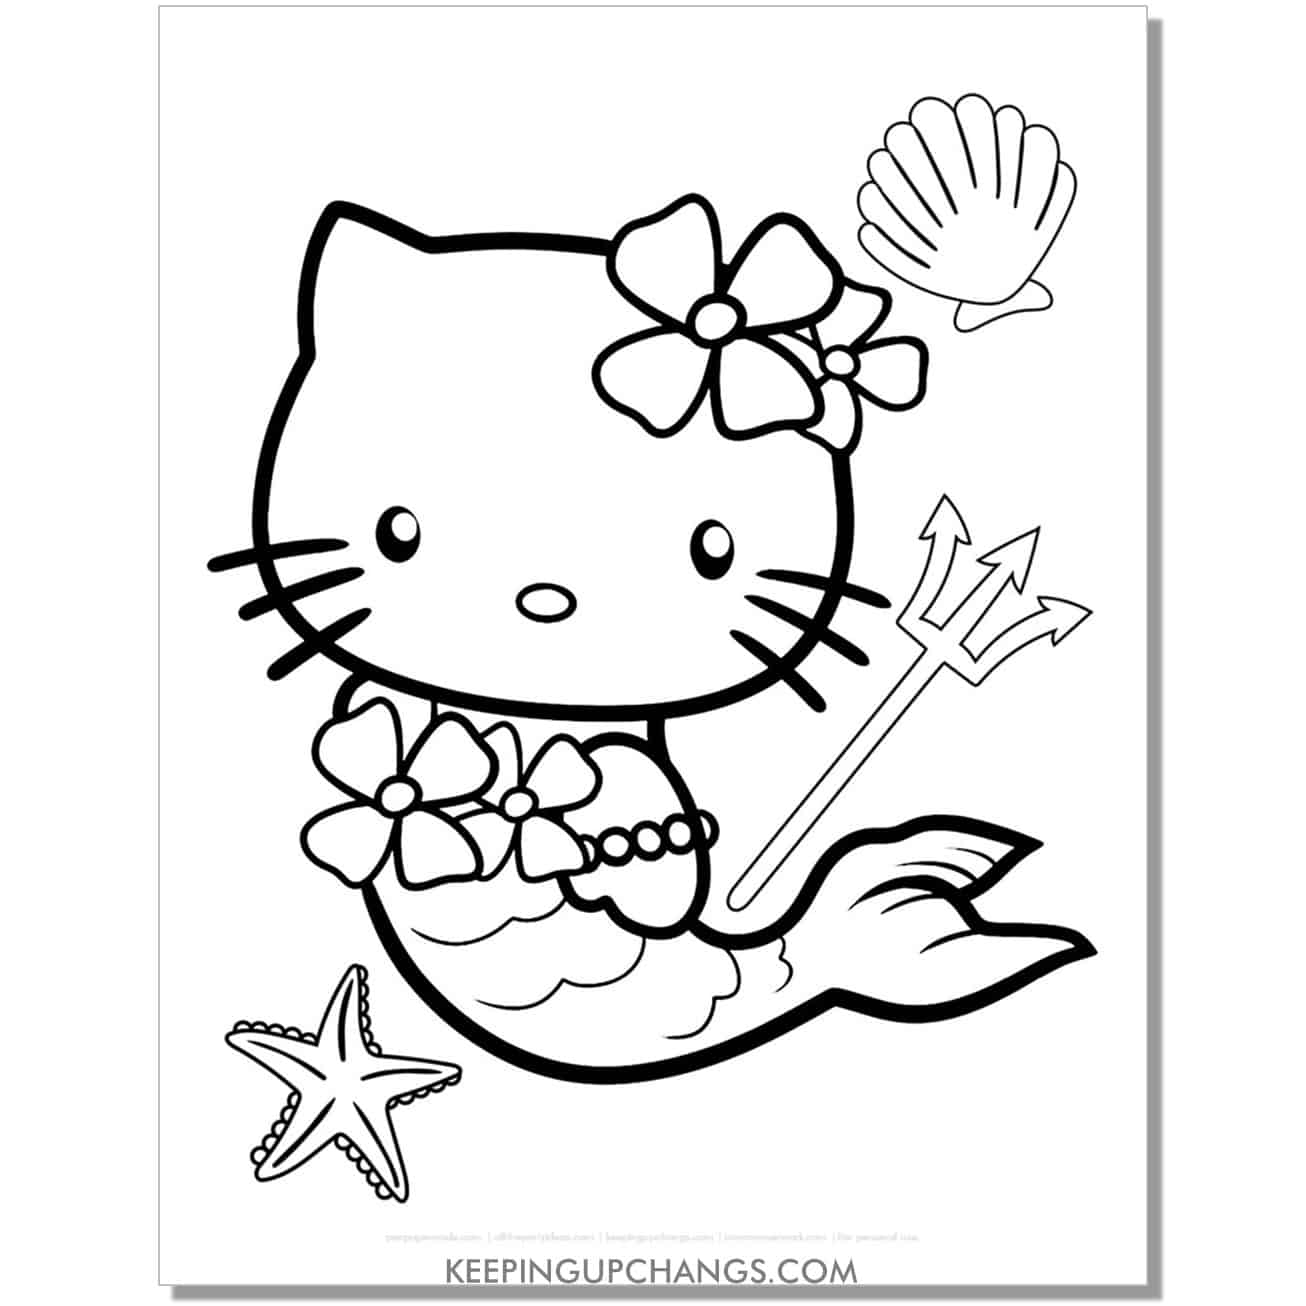 mermaid with seashell, starfish, pitchfork hello kitty coloring page.